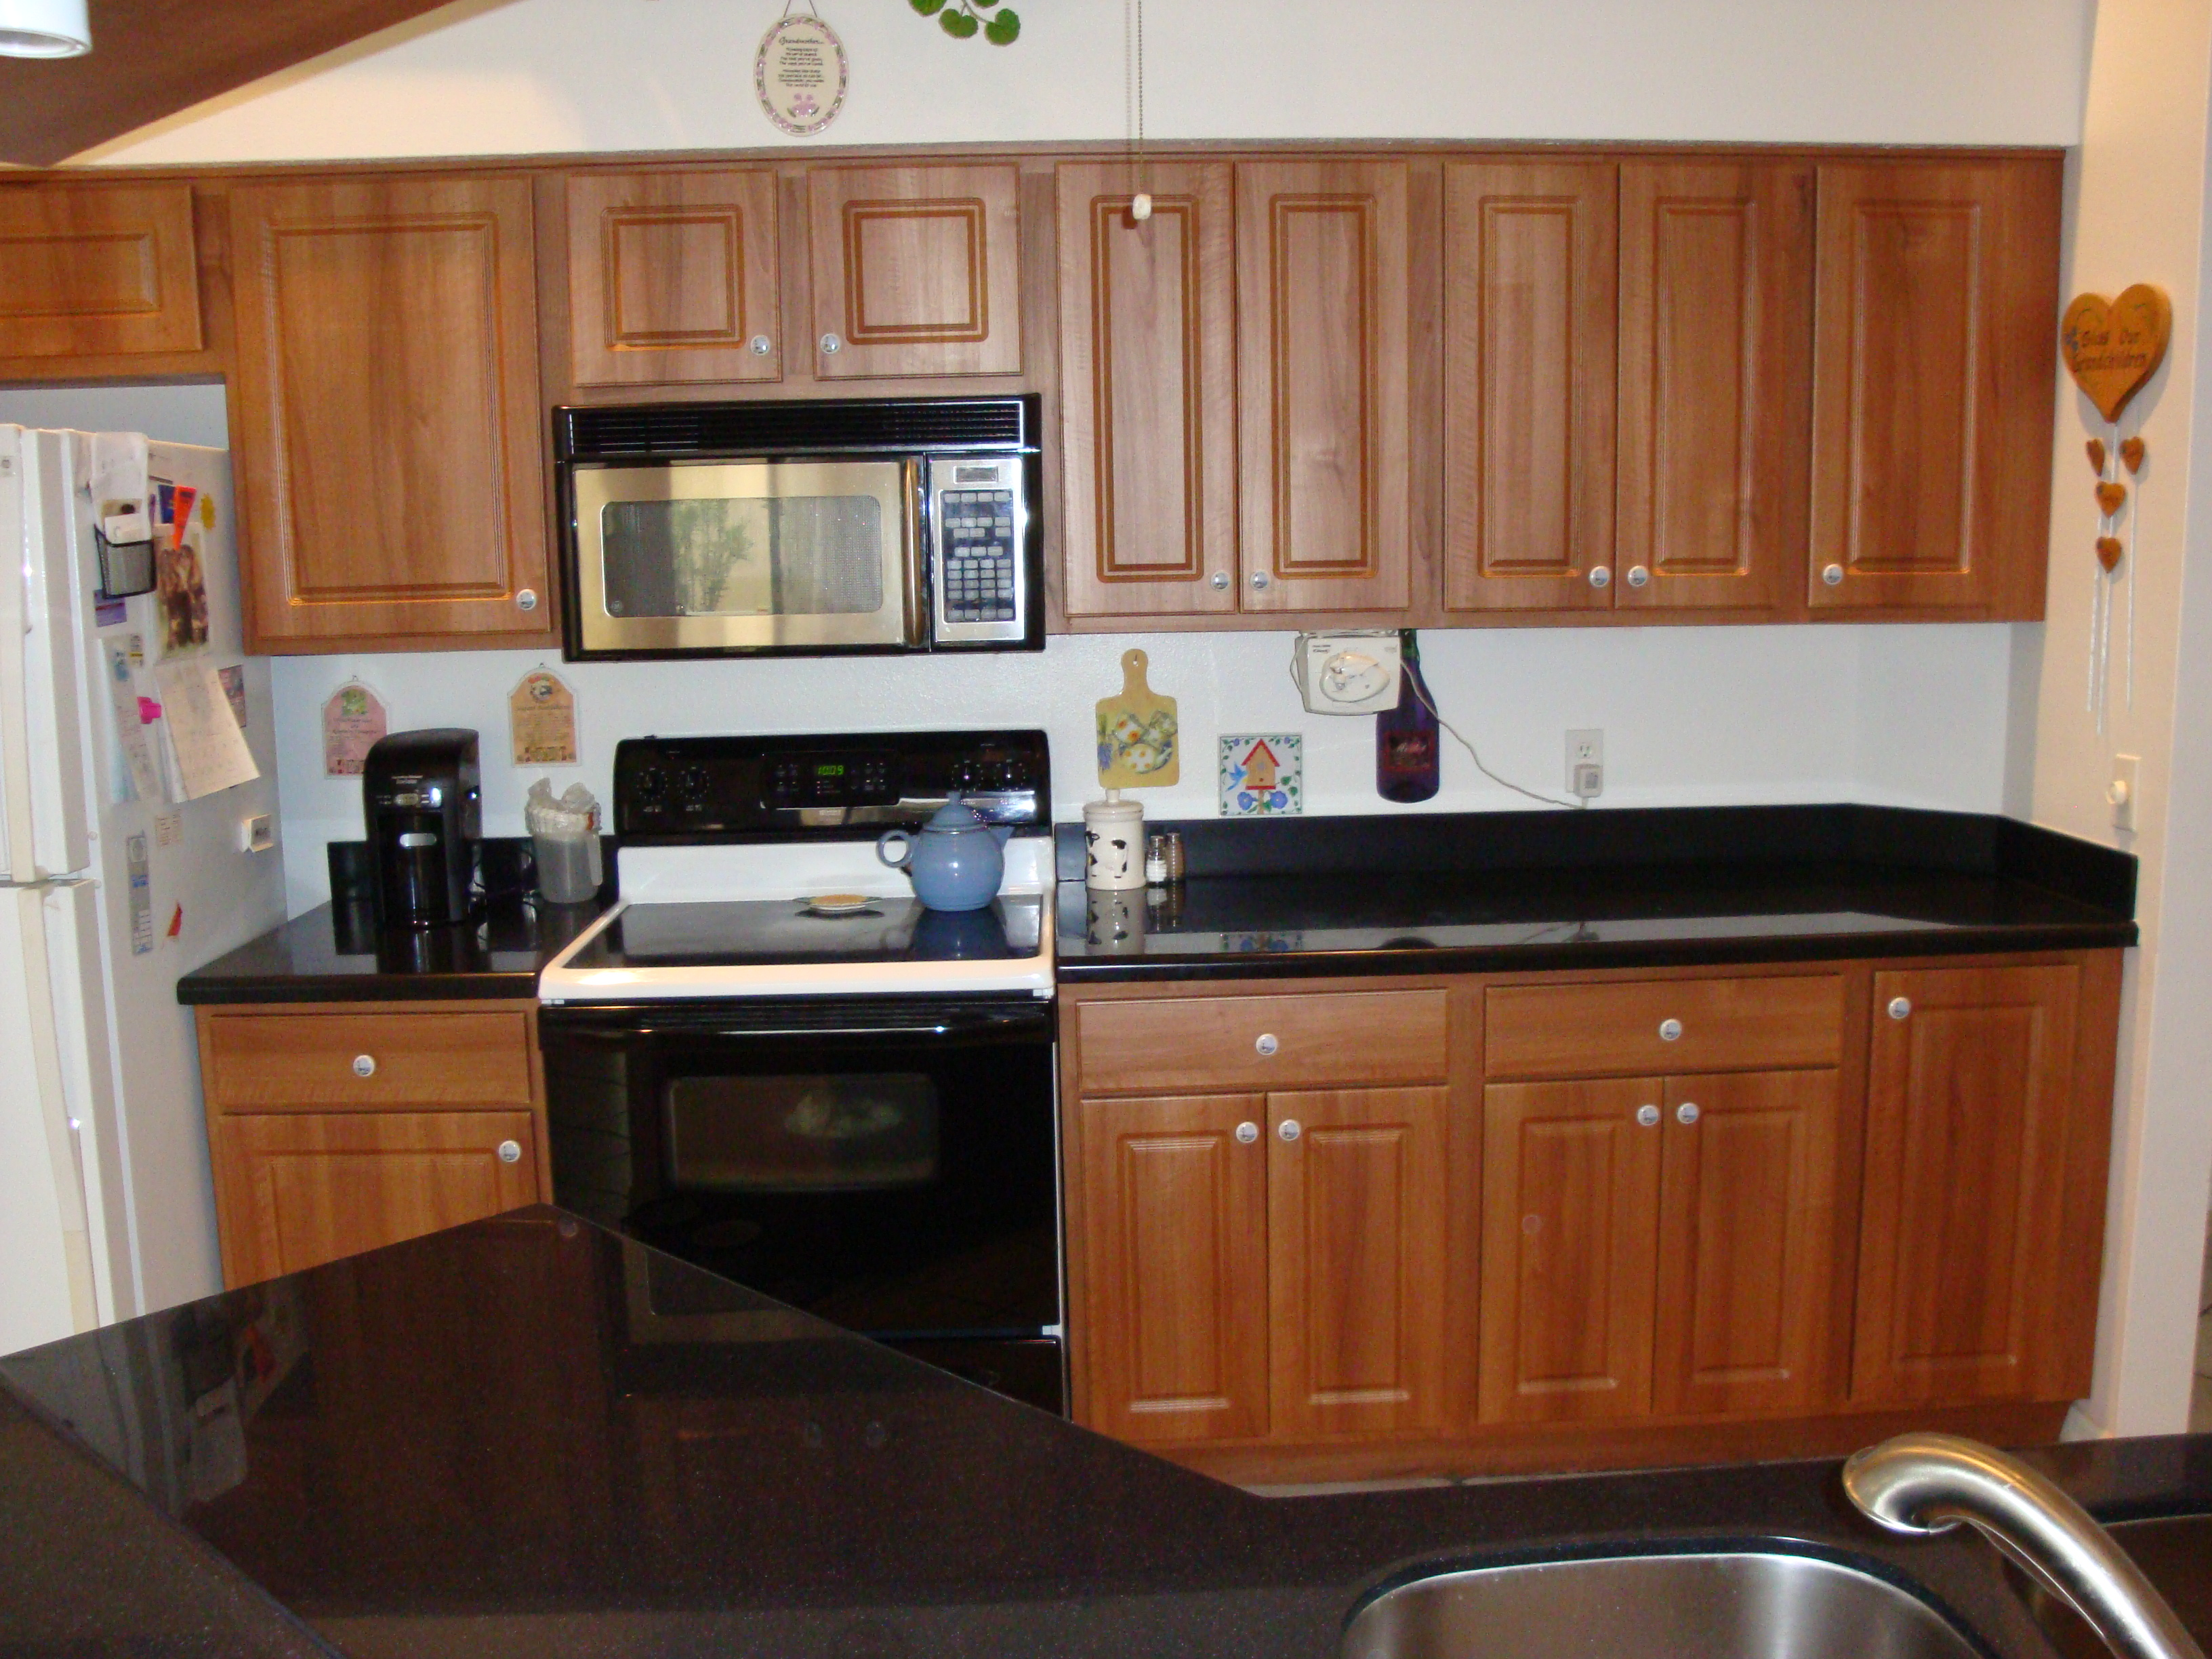 Resurface Kitchen Cabinets Cost 100  How Much To Reface Kitchen Cabinets   Furniture Costco